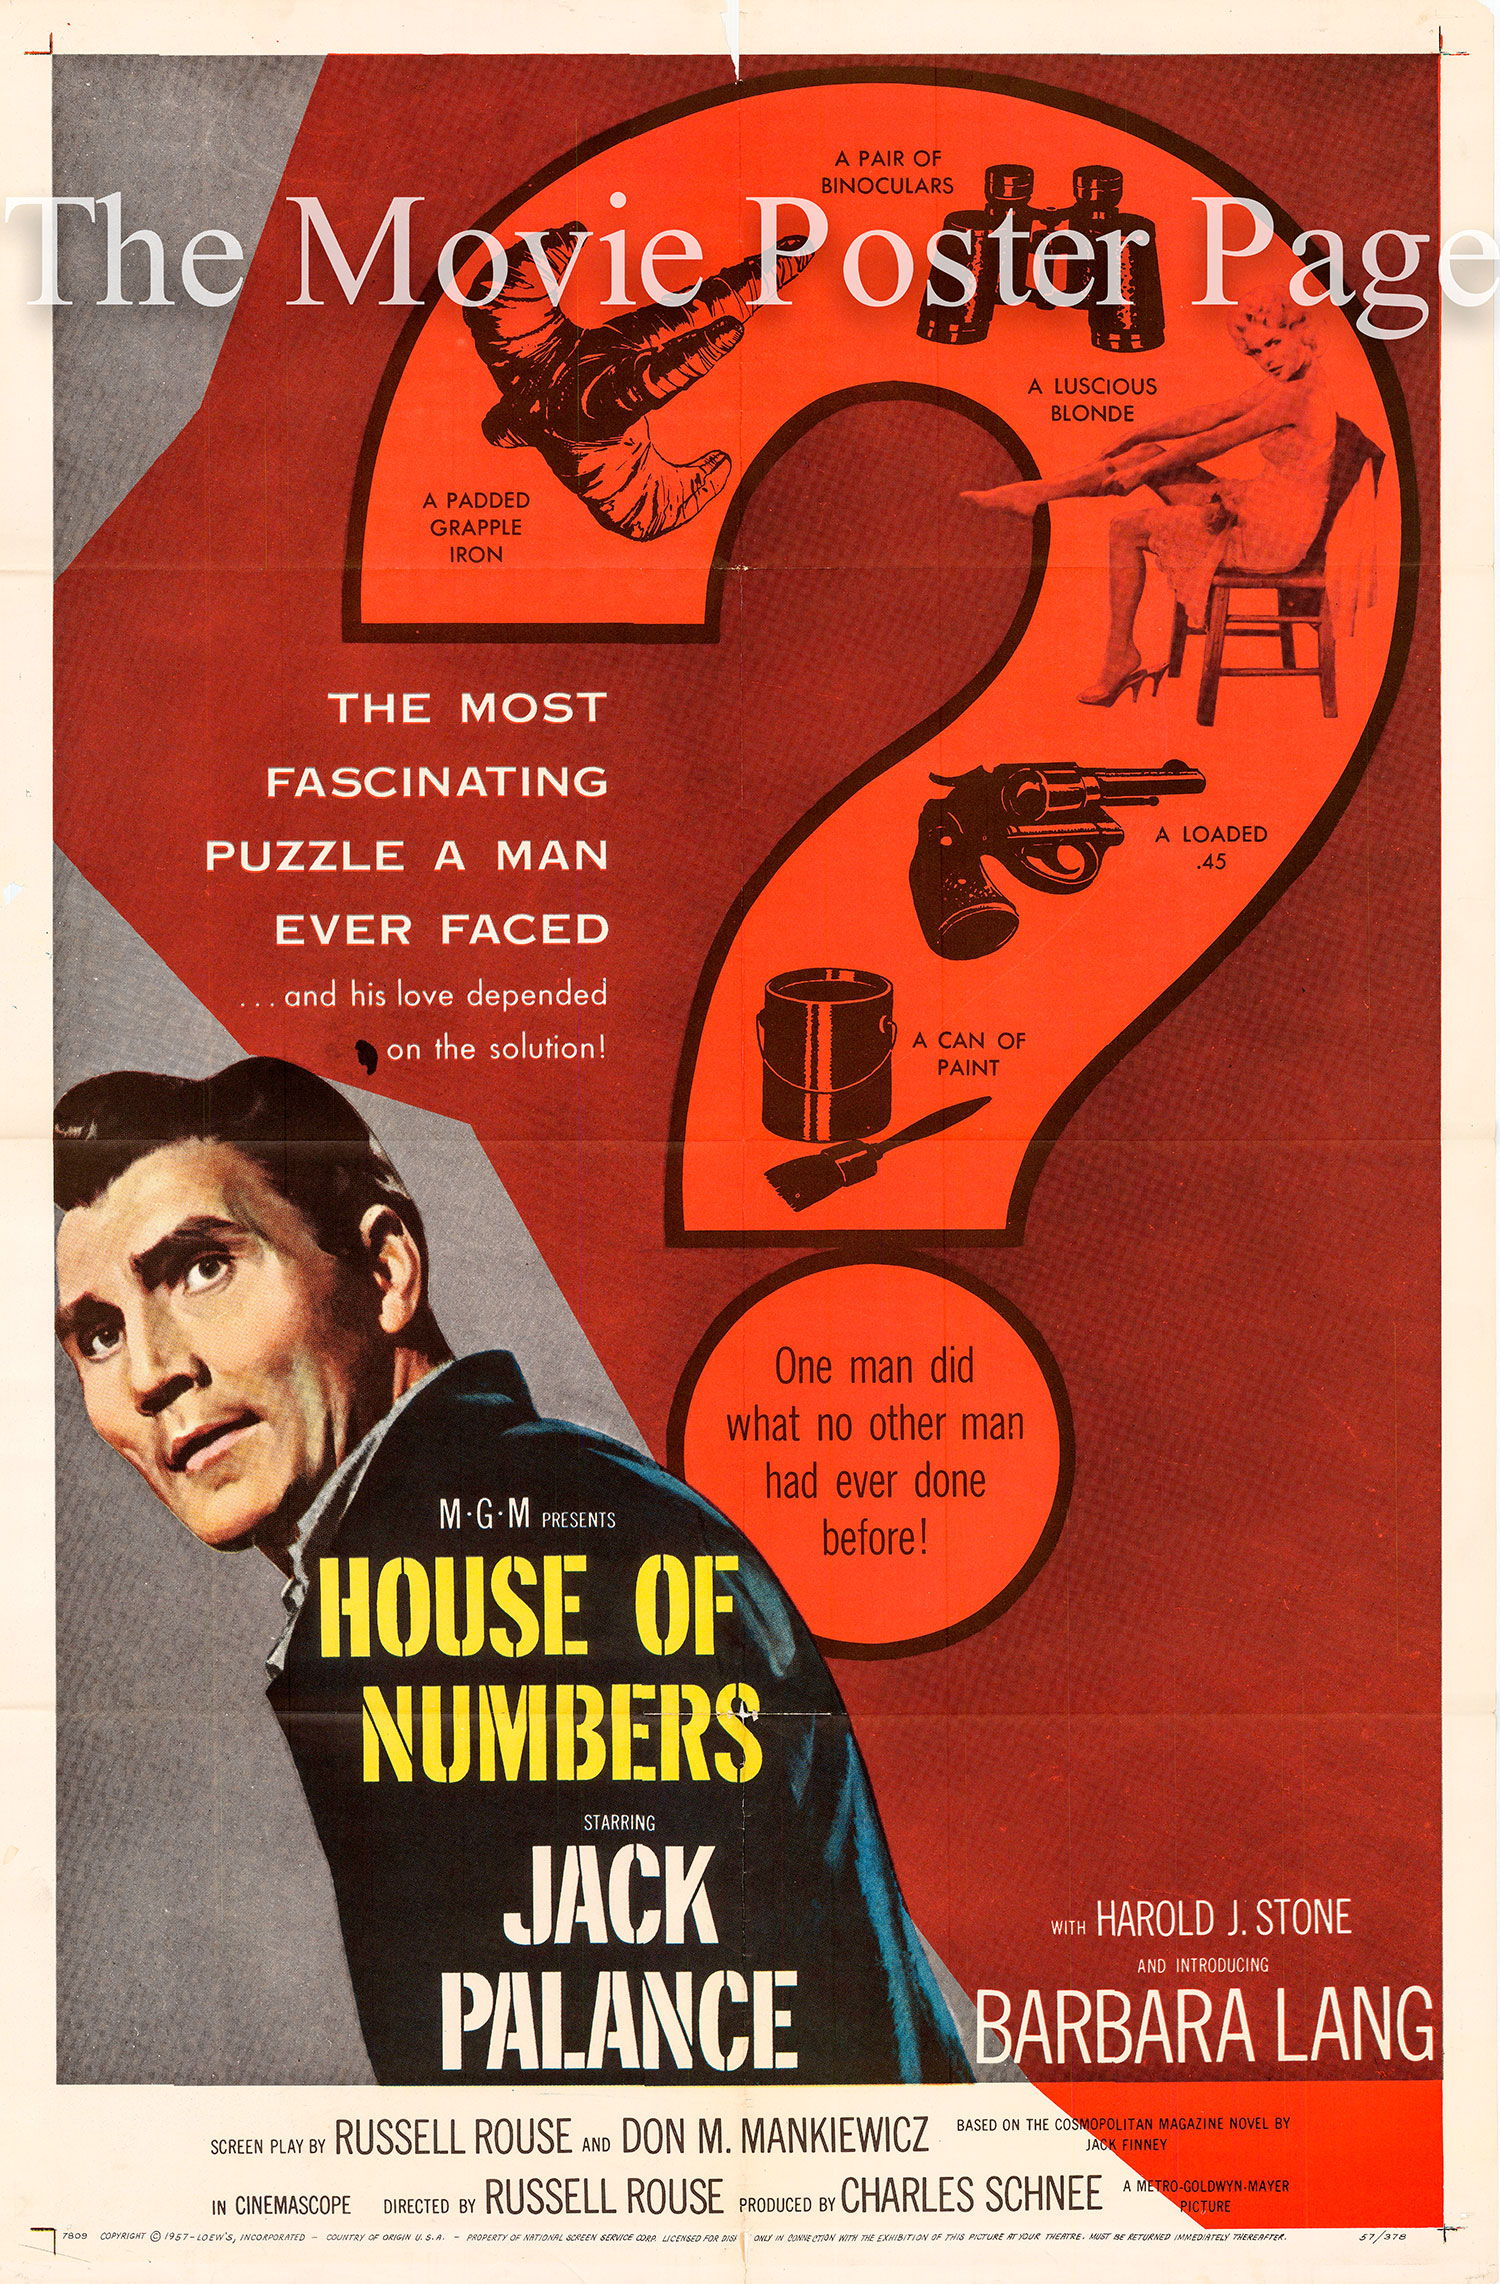 Pictured is a US one-sheet promotional poster for the 1957 Russell Rouse film House of Numbers starring Jack Palance.